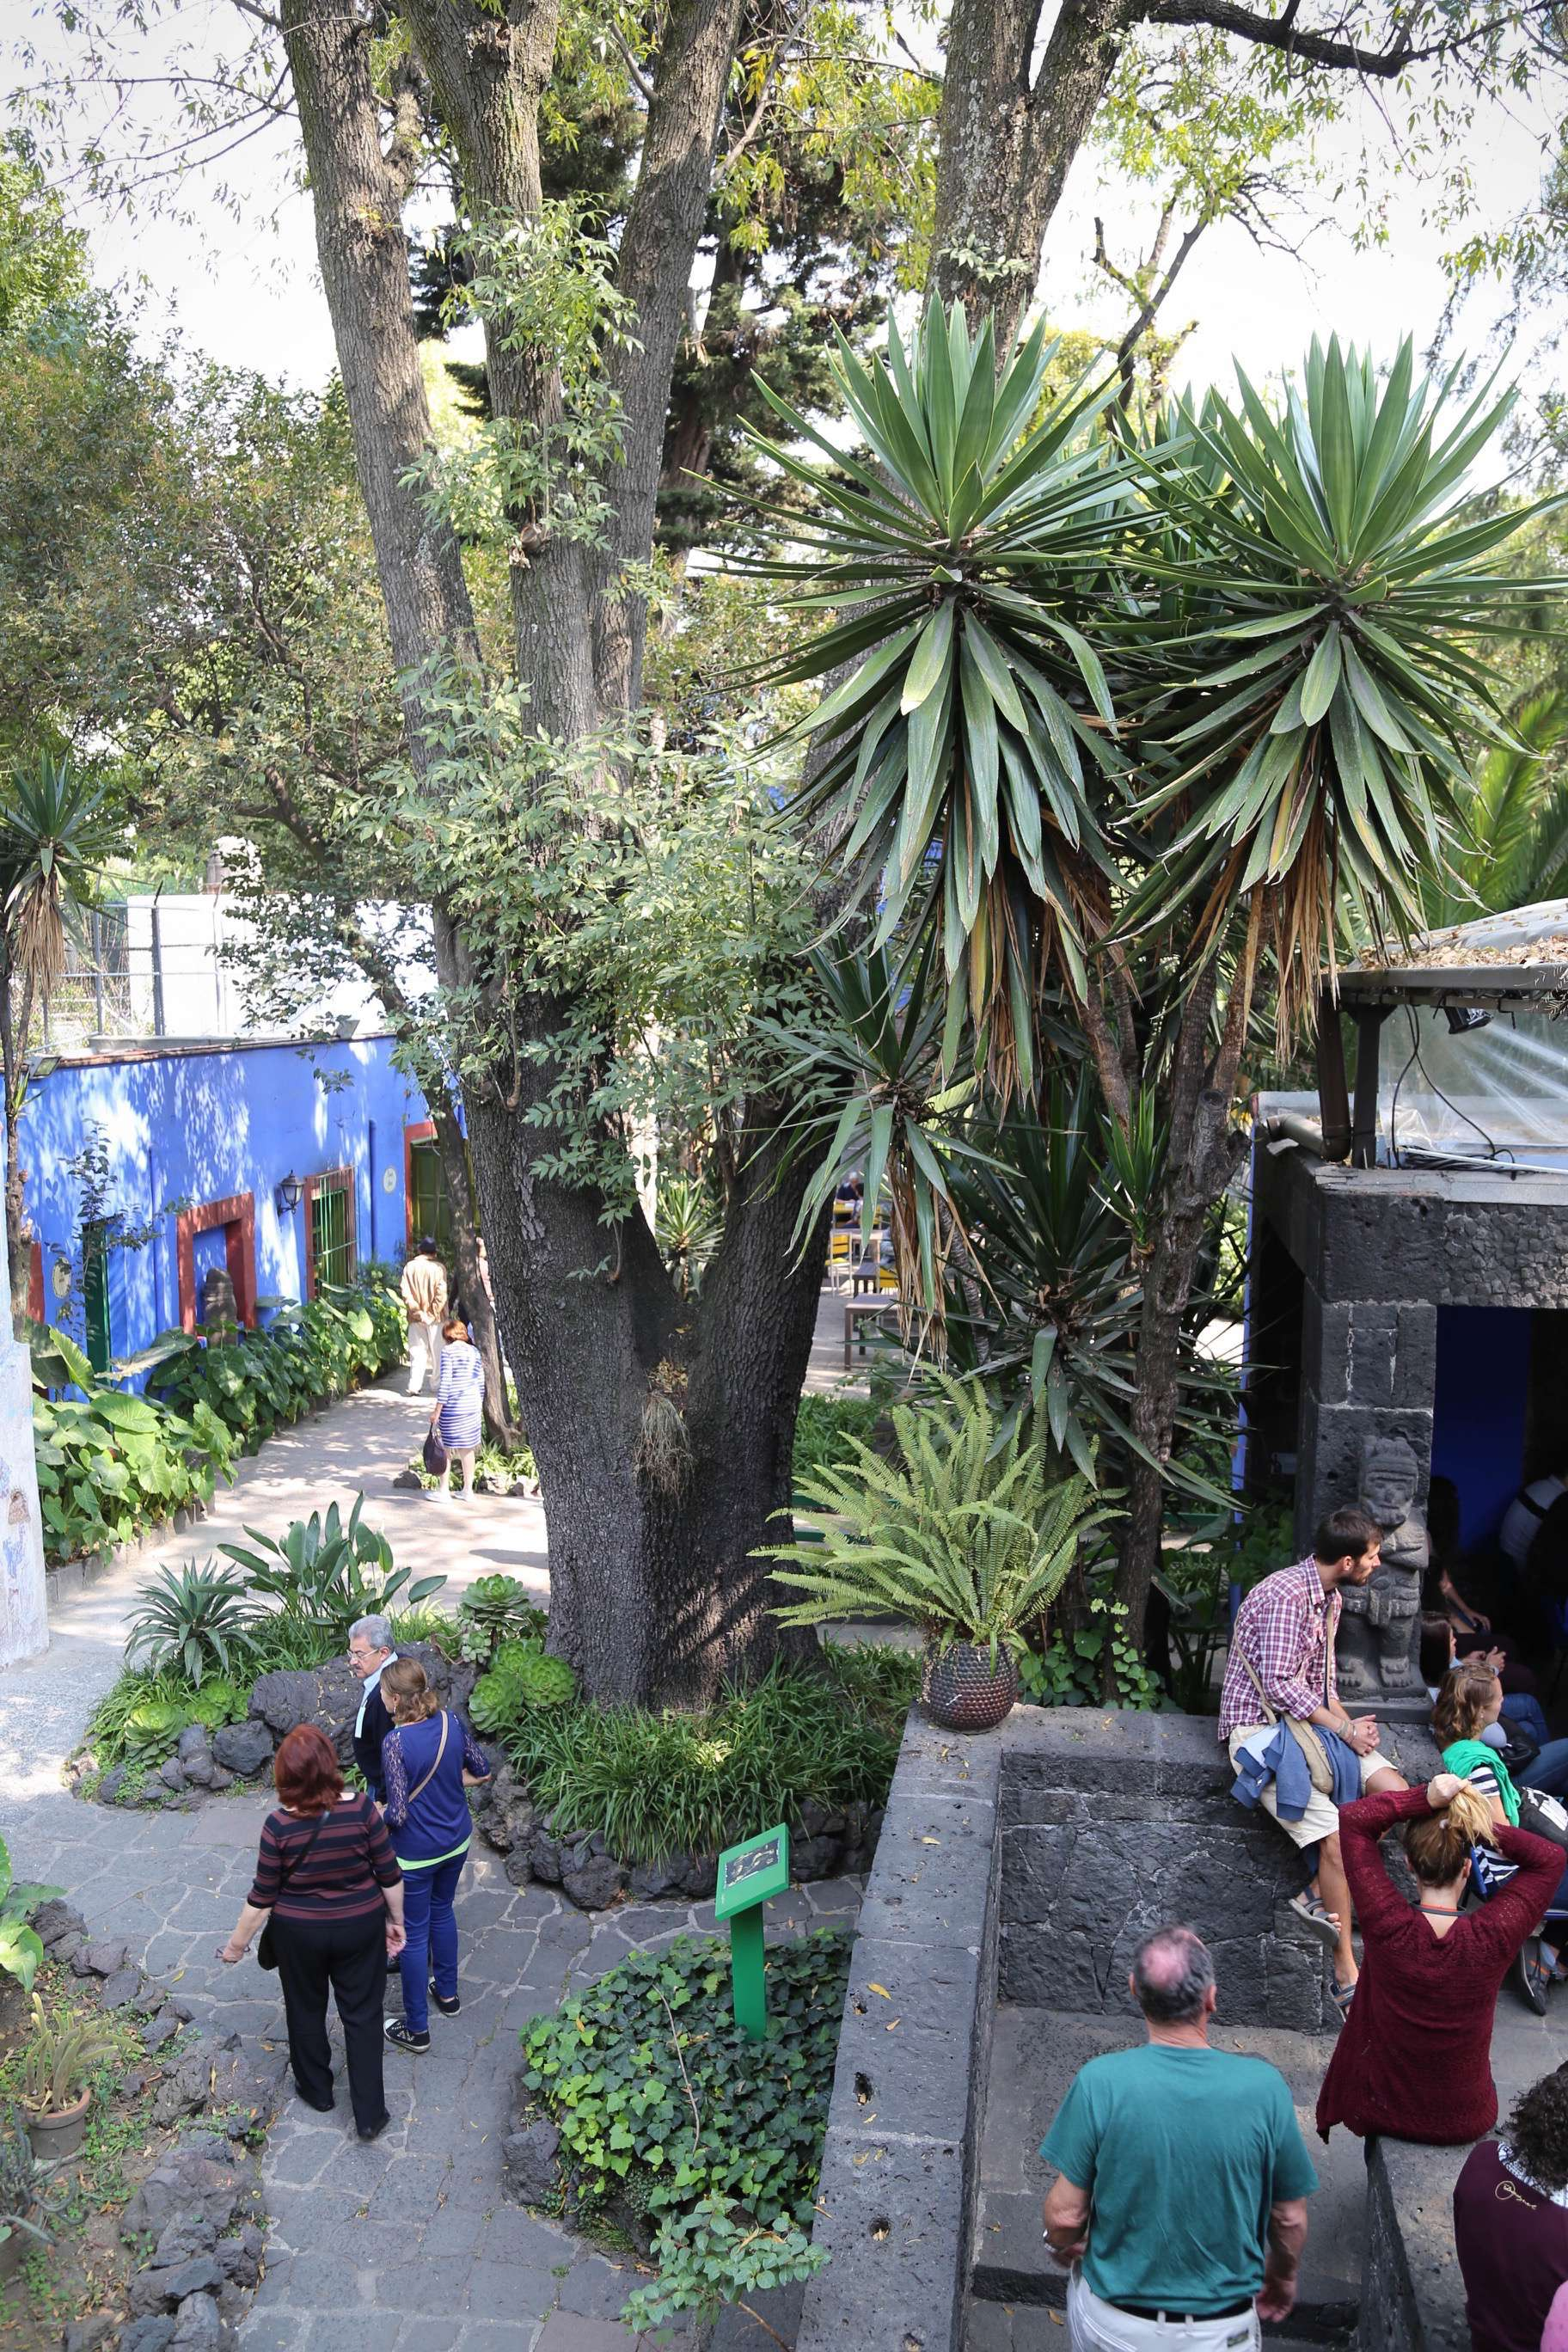 A group of visitors pause on a patio as others stroll the grounds at Casa Azul.